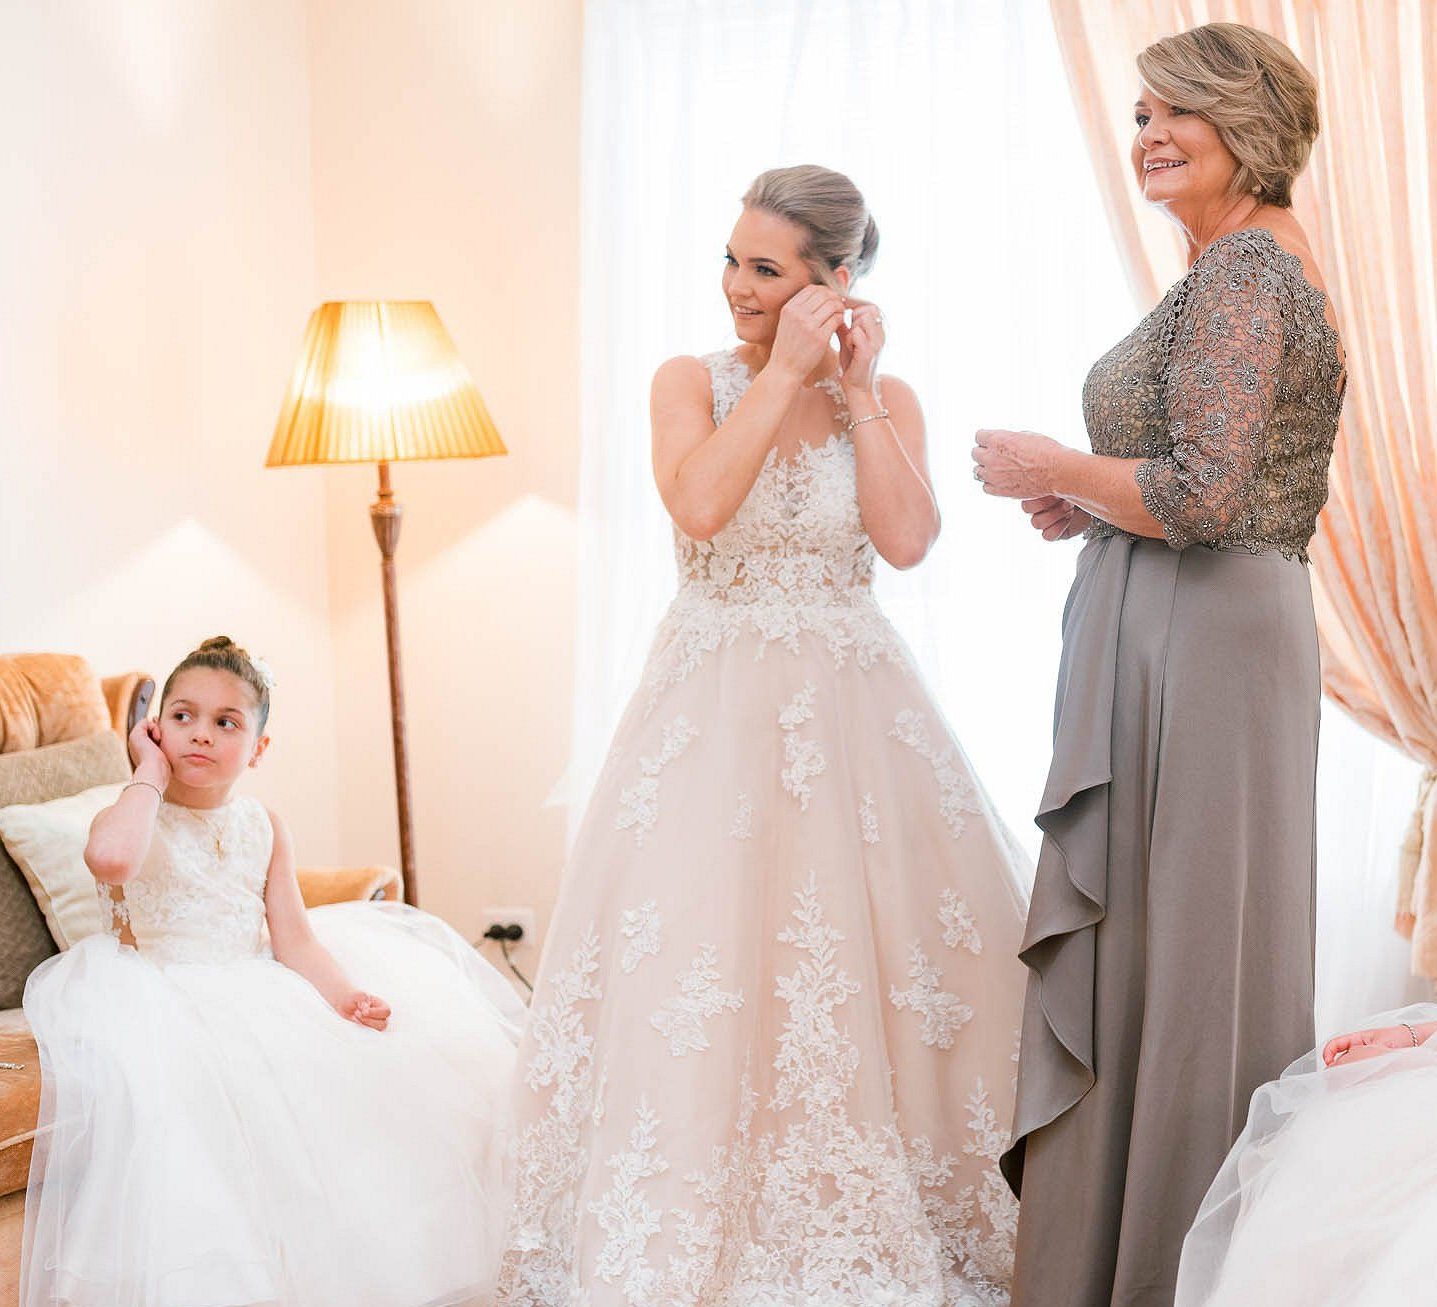 A simple moment - until you realise that this photo has captured 3 generations of the one family. I love the way that our bride Melissa and her daughter are mirroring each other in their movements, with Melissa's mum watching on. And it's all beautifully backlit, giving the photo a soft and intimate feeling.